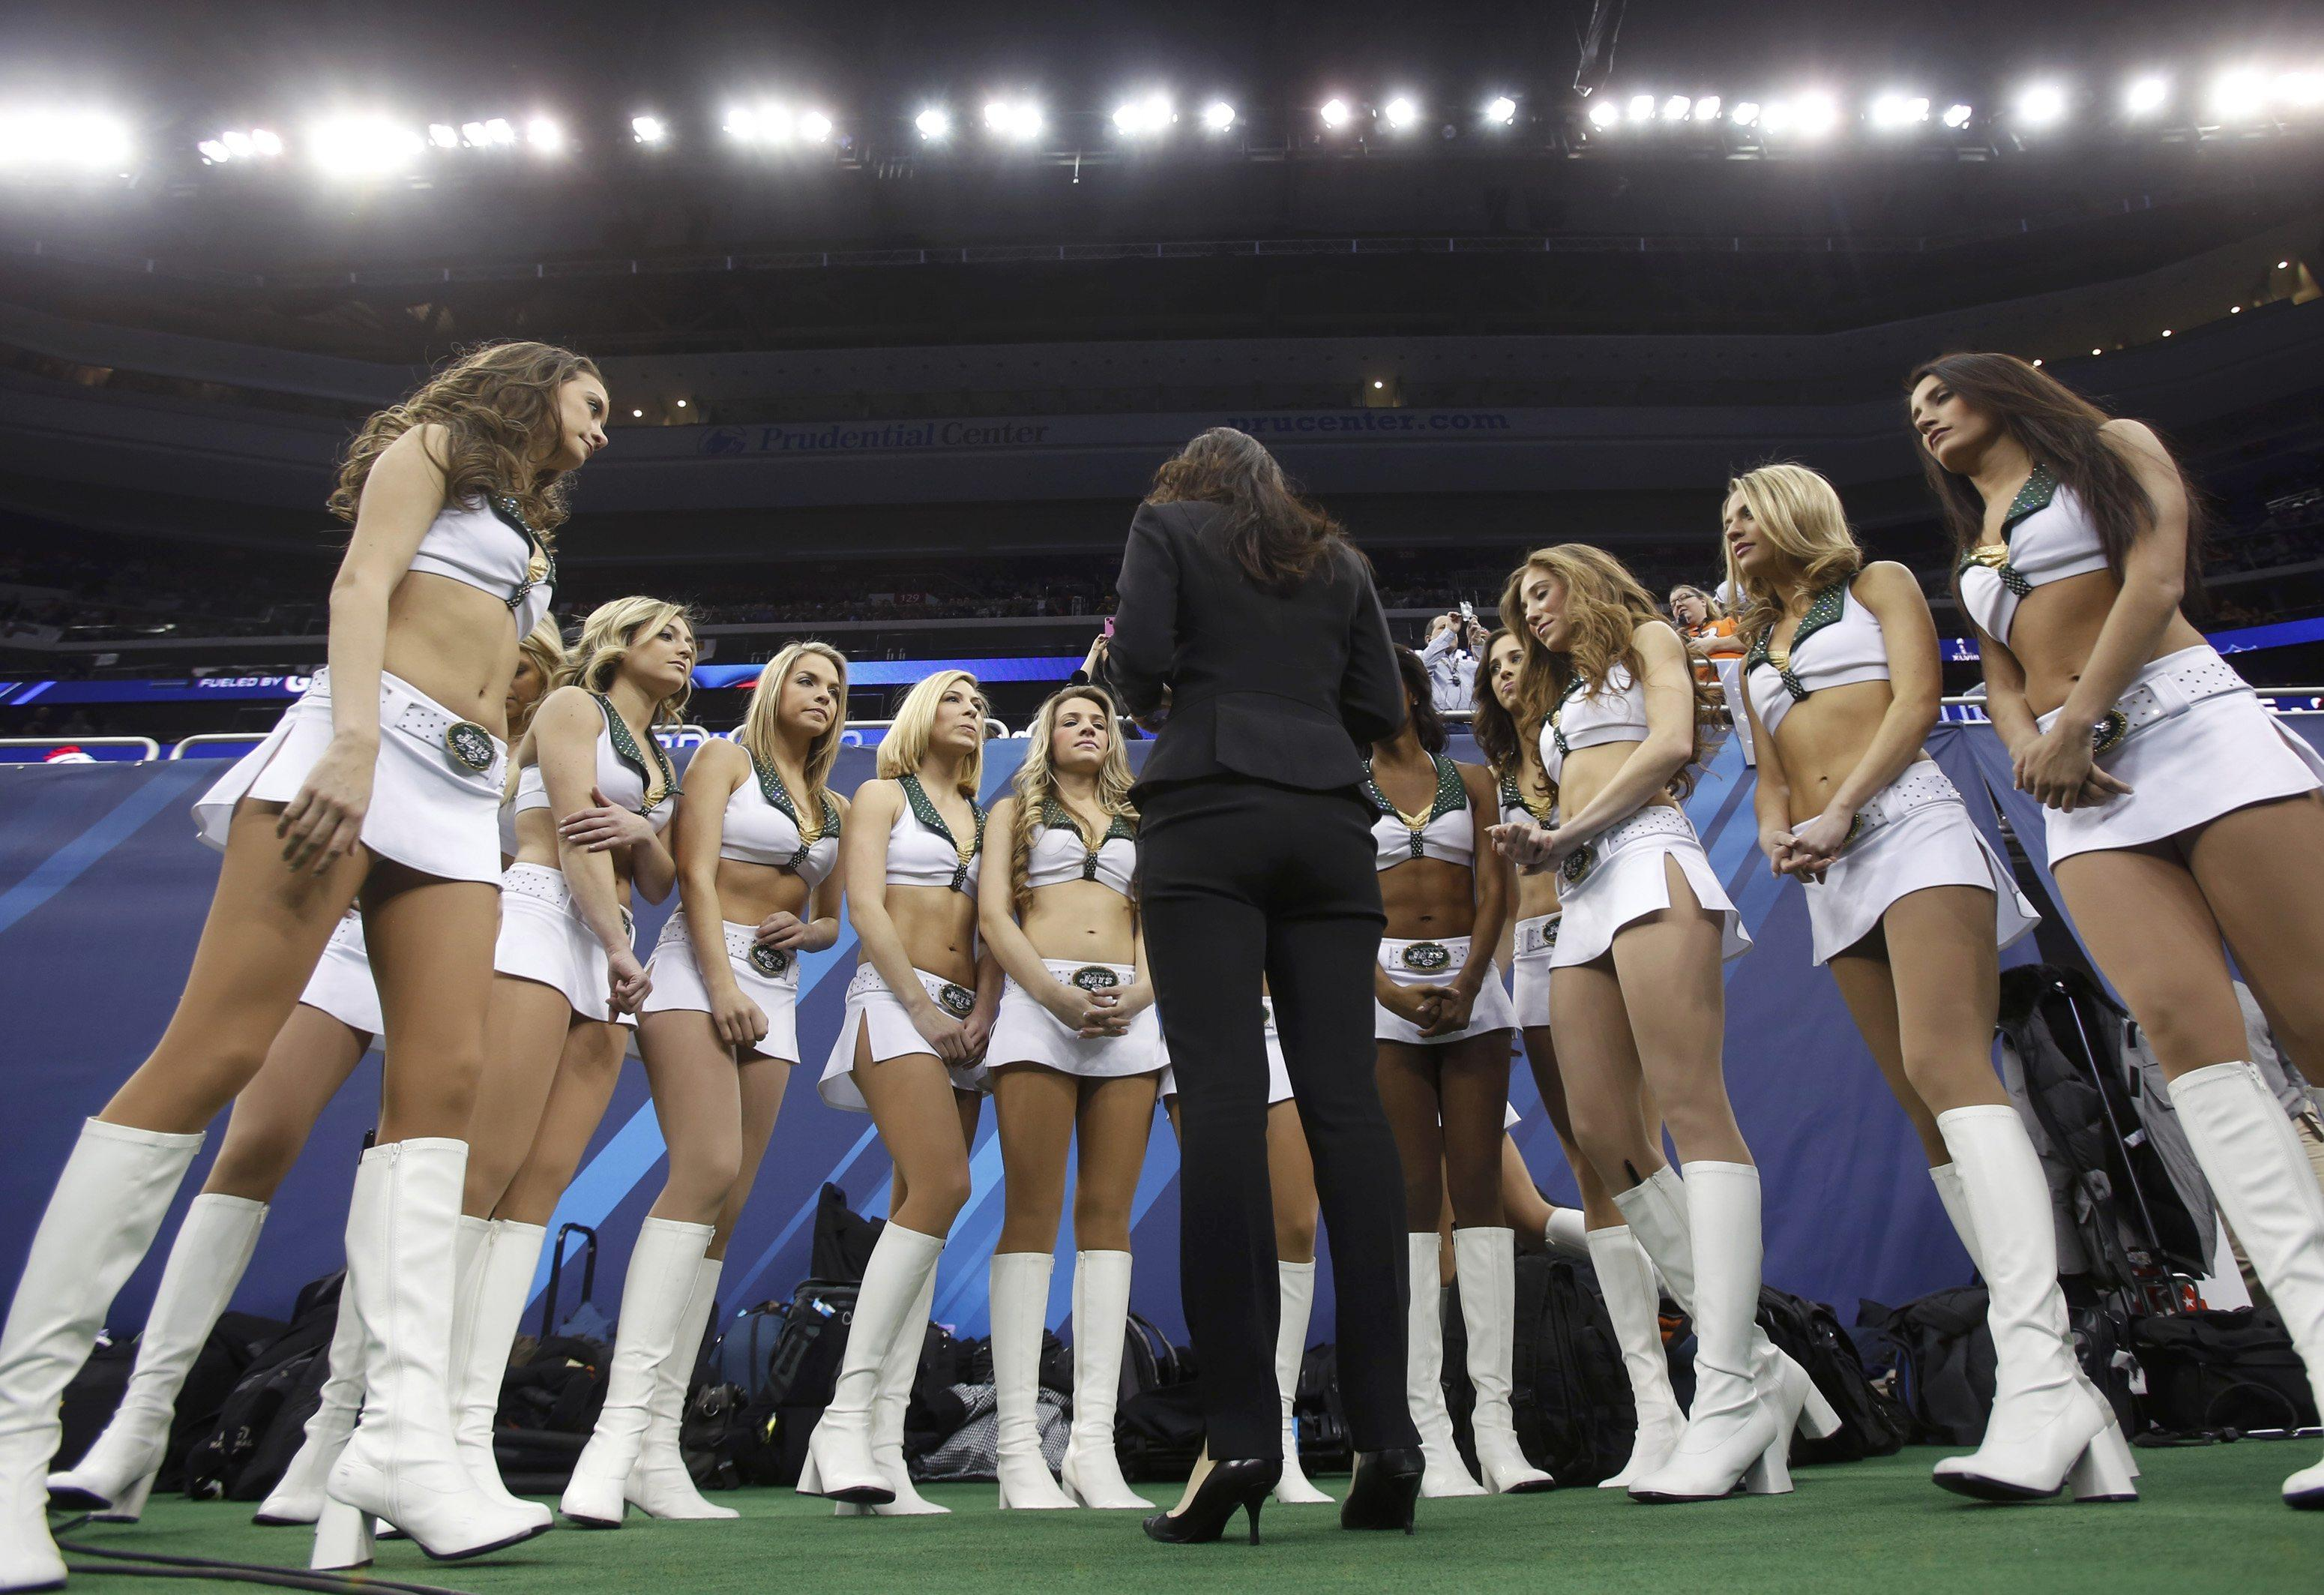 Super Bowl Media Day cheerleaders